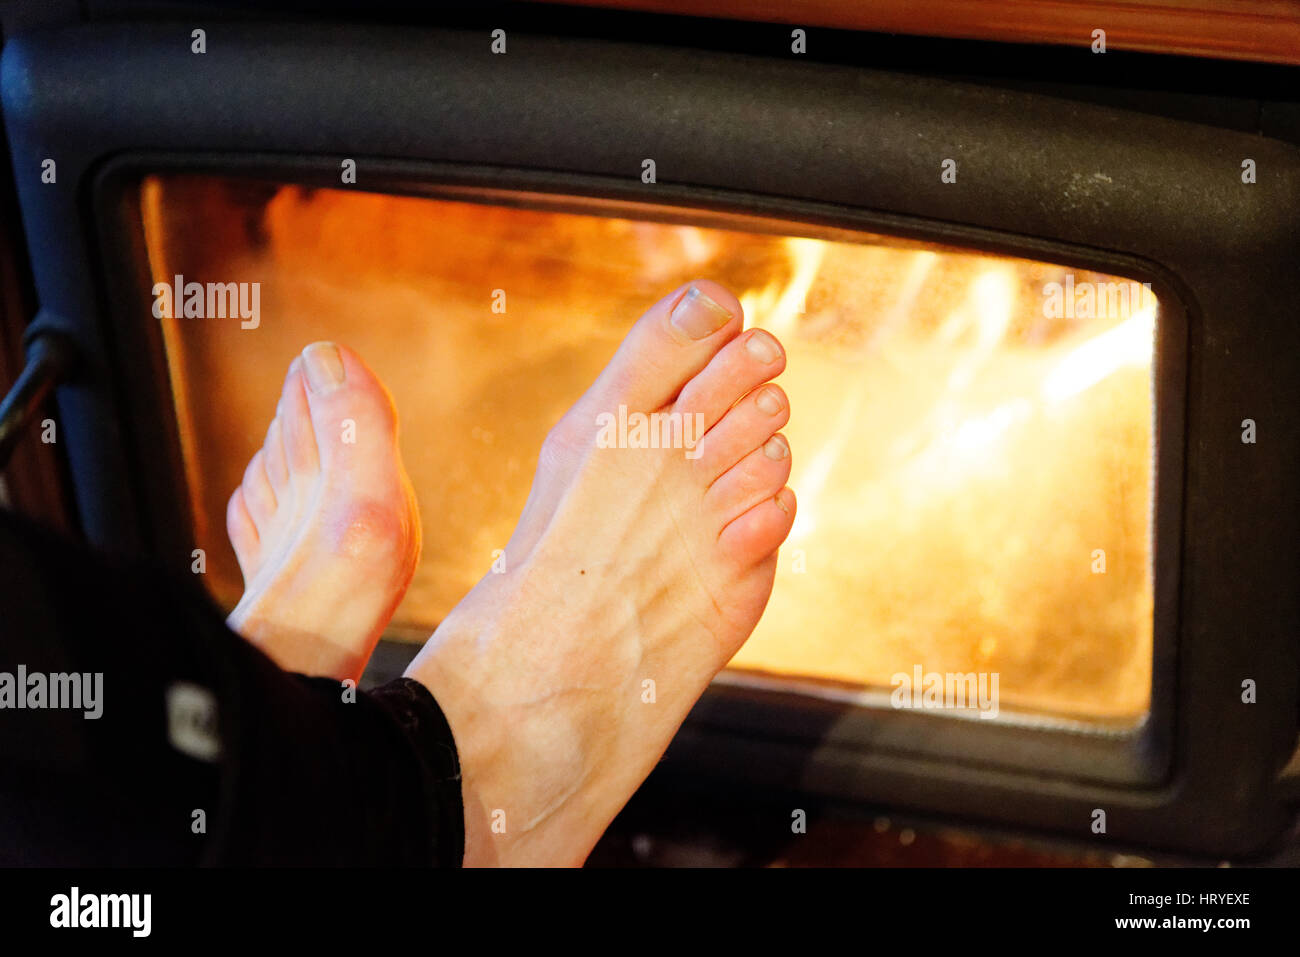 Cold feet warming in front of a blazing fire - Stock Image